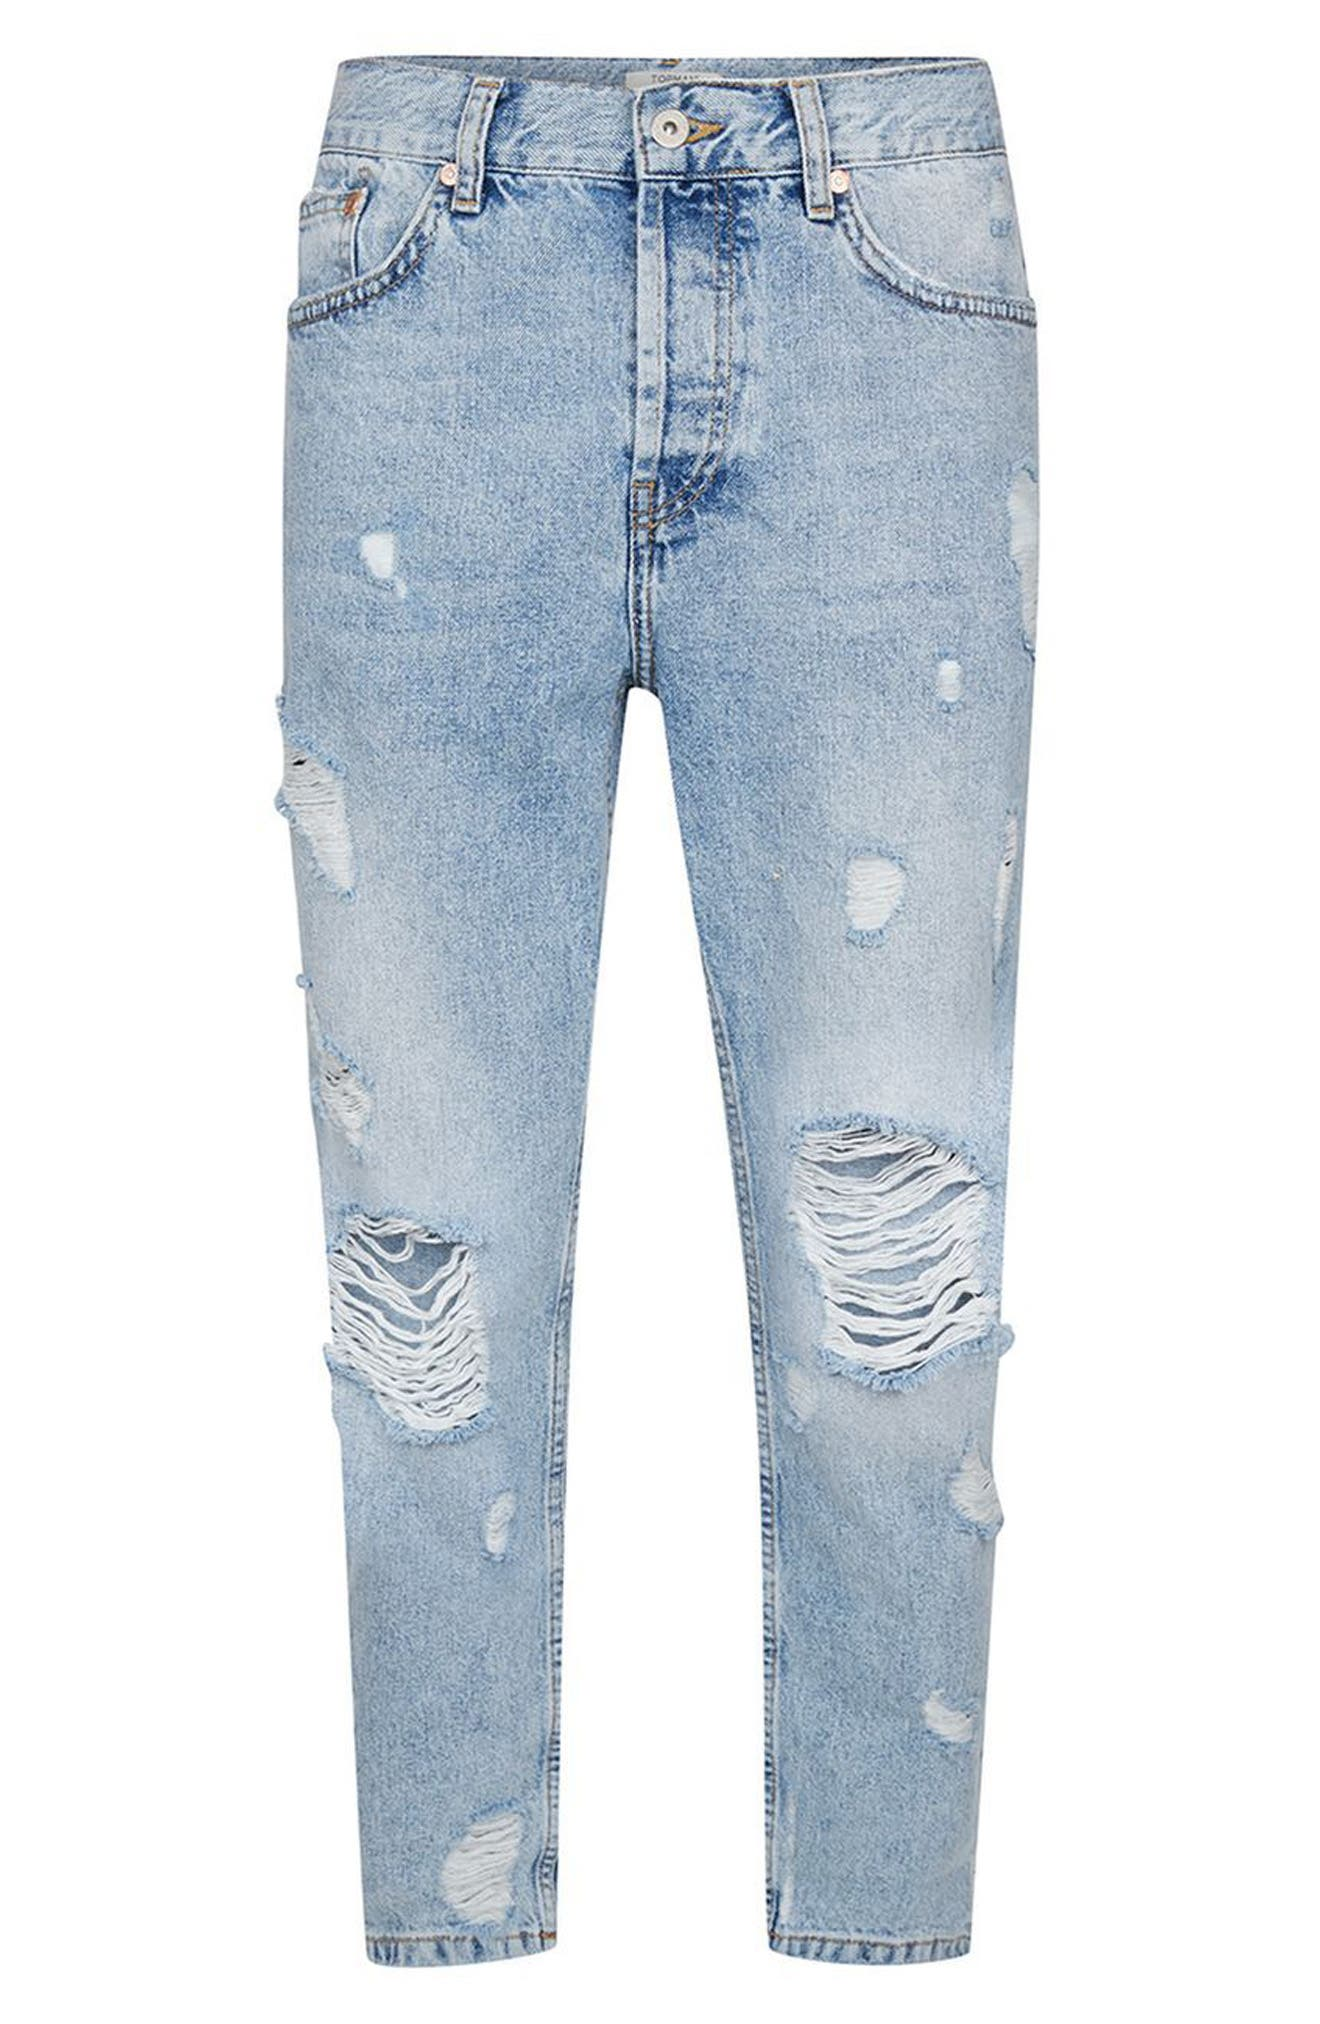 Topshop Extreme Rip Tapered Jeans,                             Alternate thumbnail 4, color,                             450